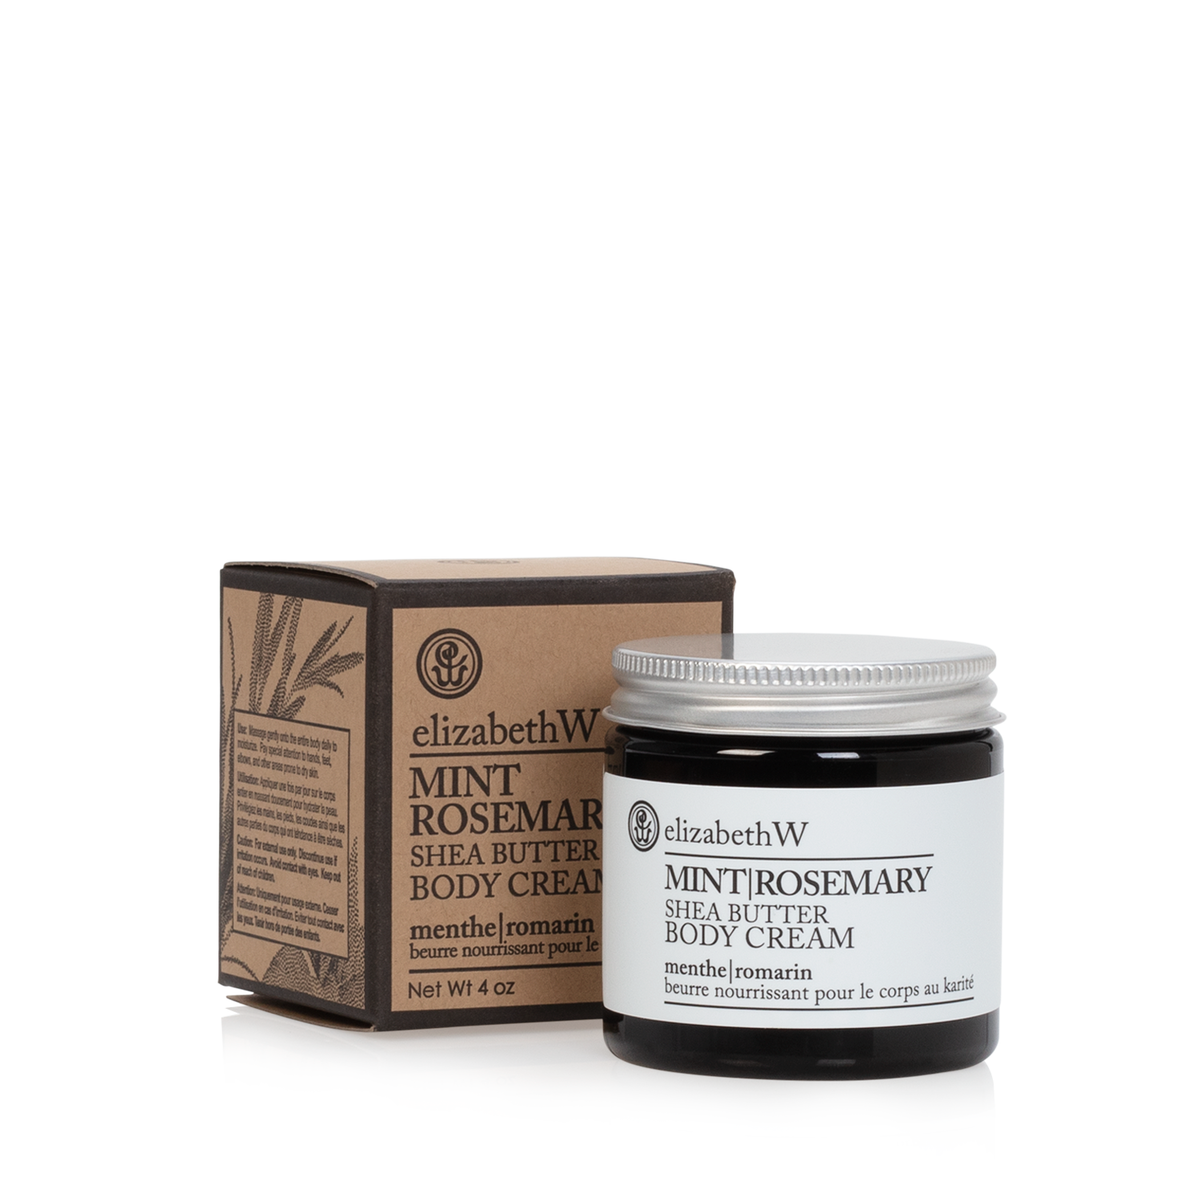 Mint Rosemary Body Cream